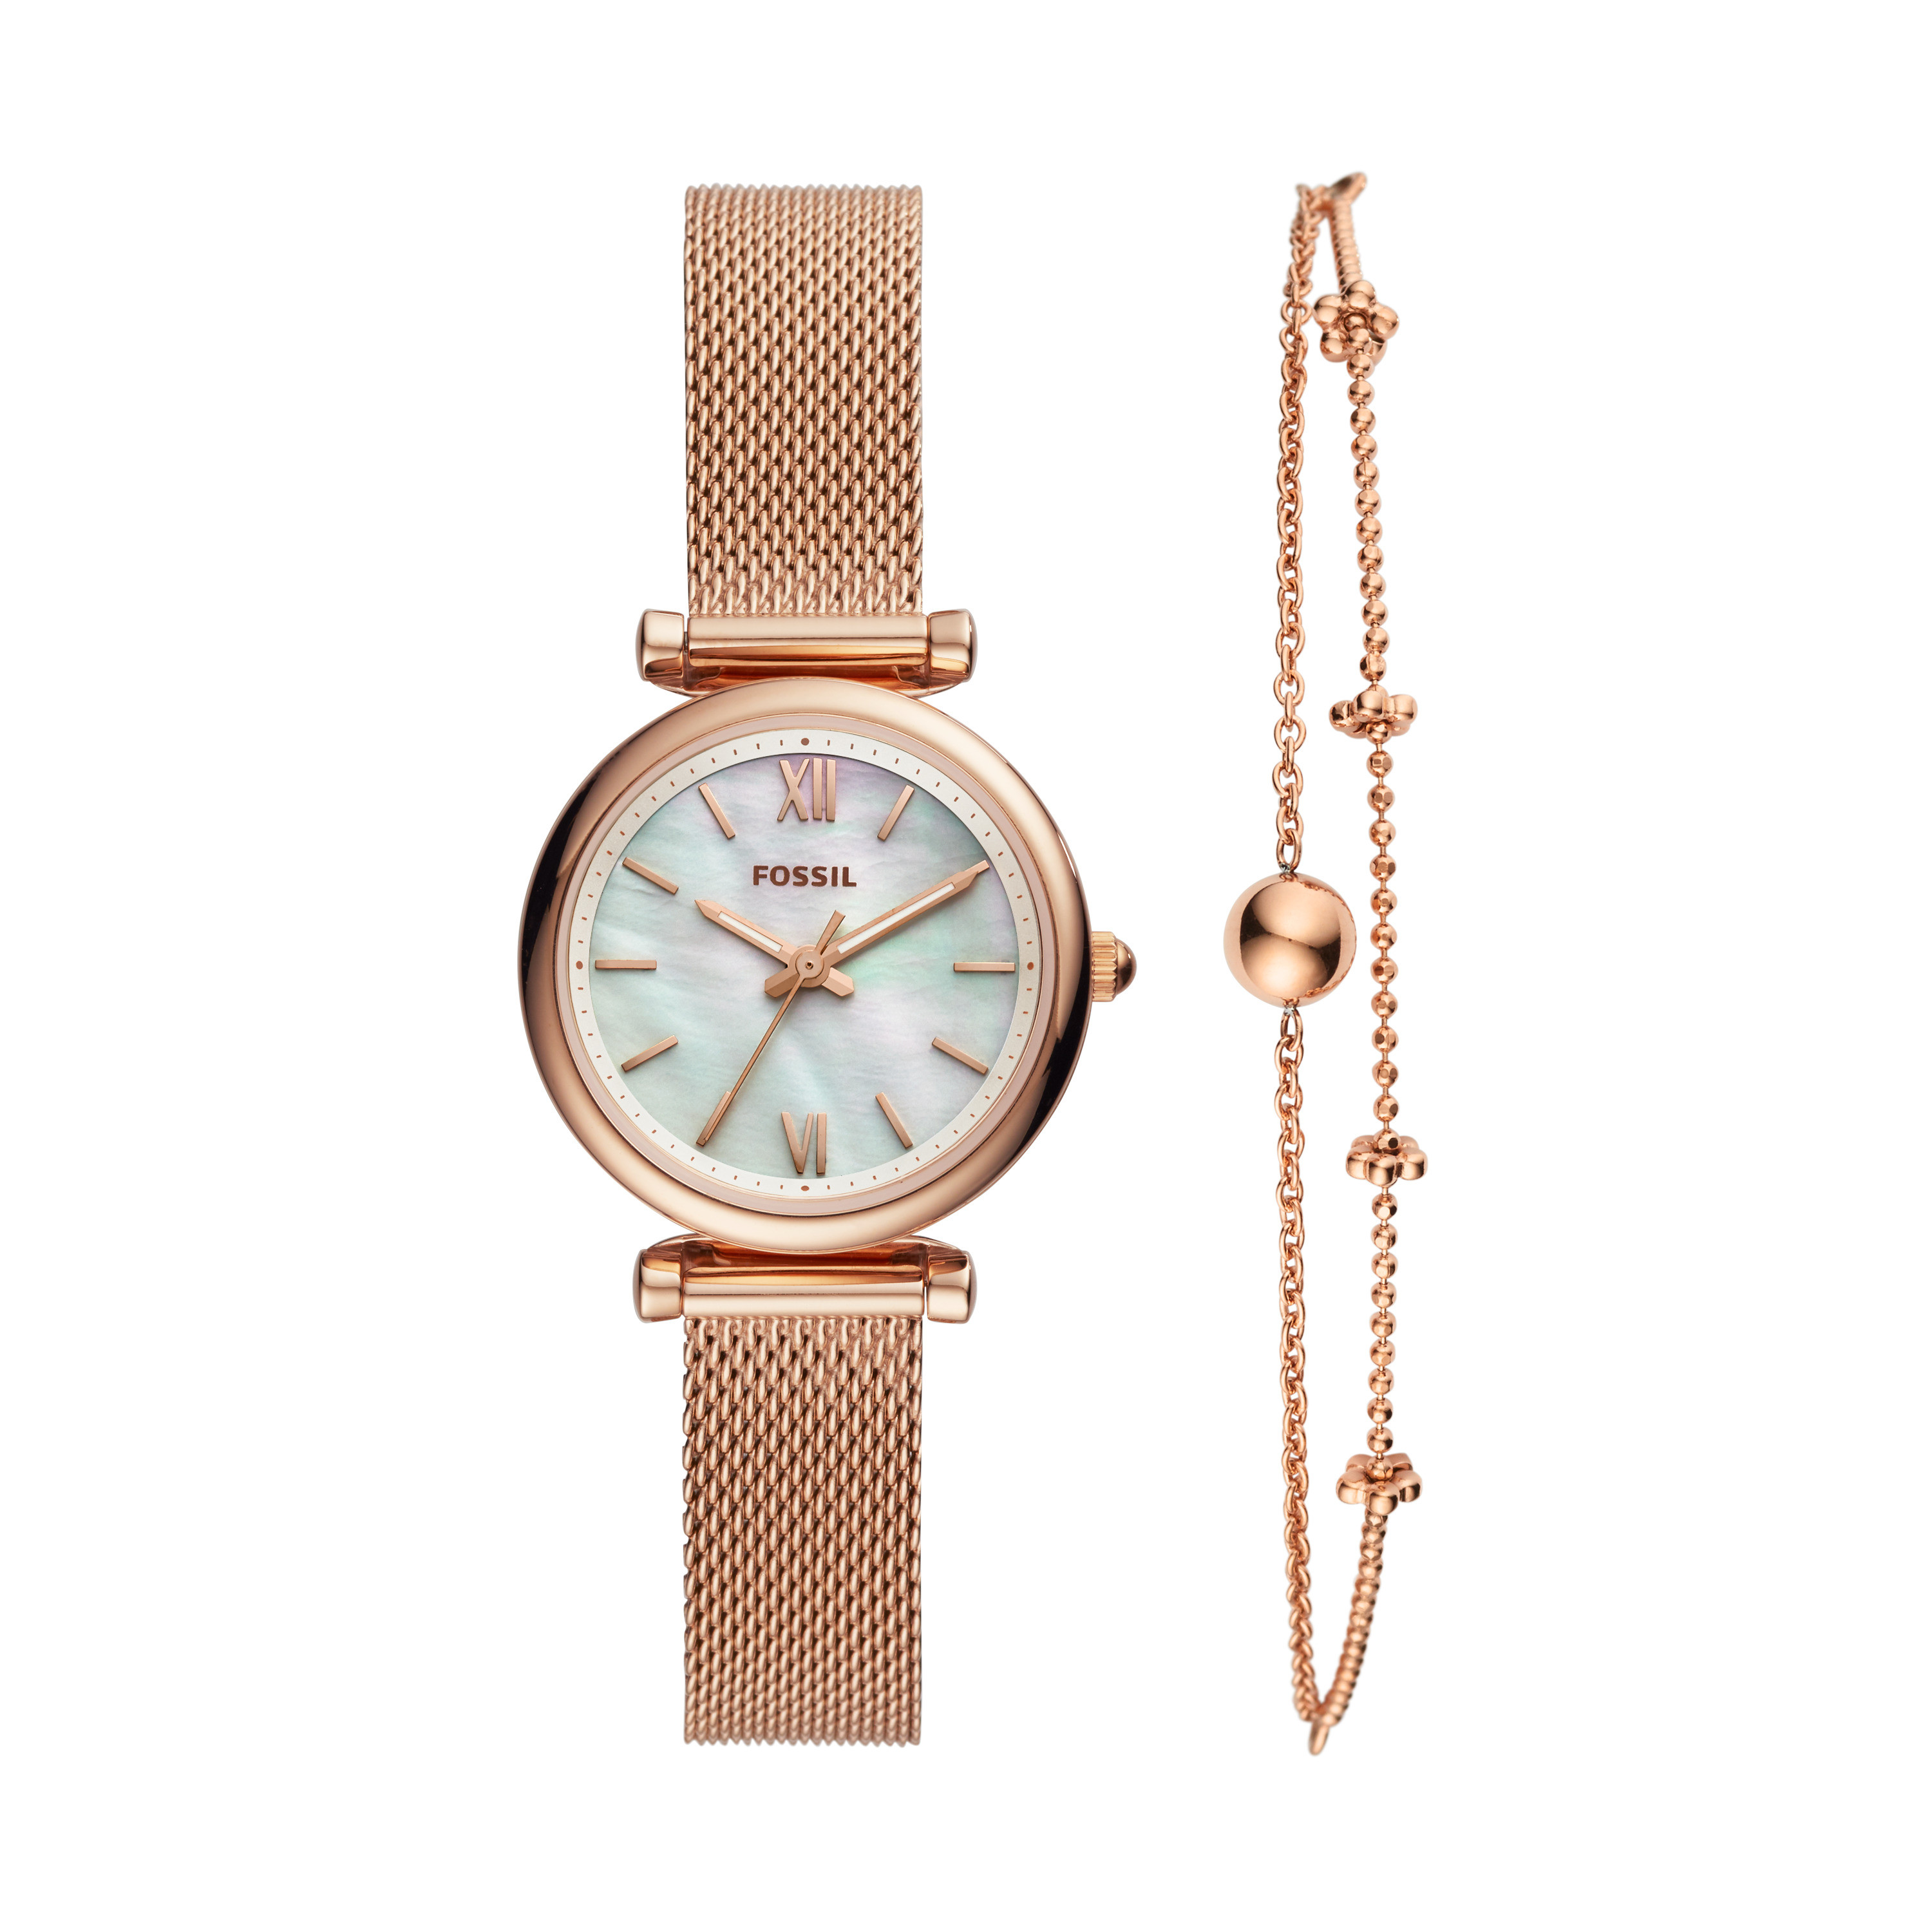 Fossil Ladies Watch And Bracelet